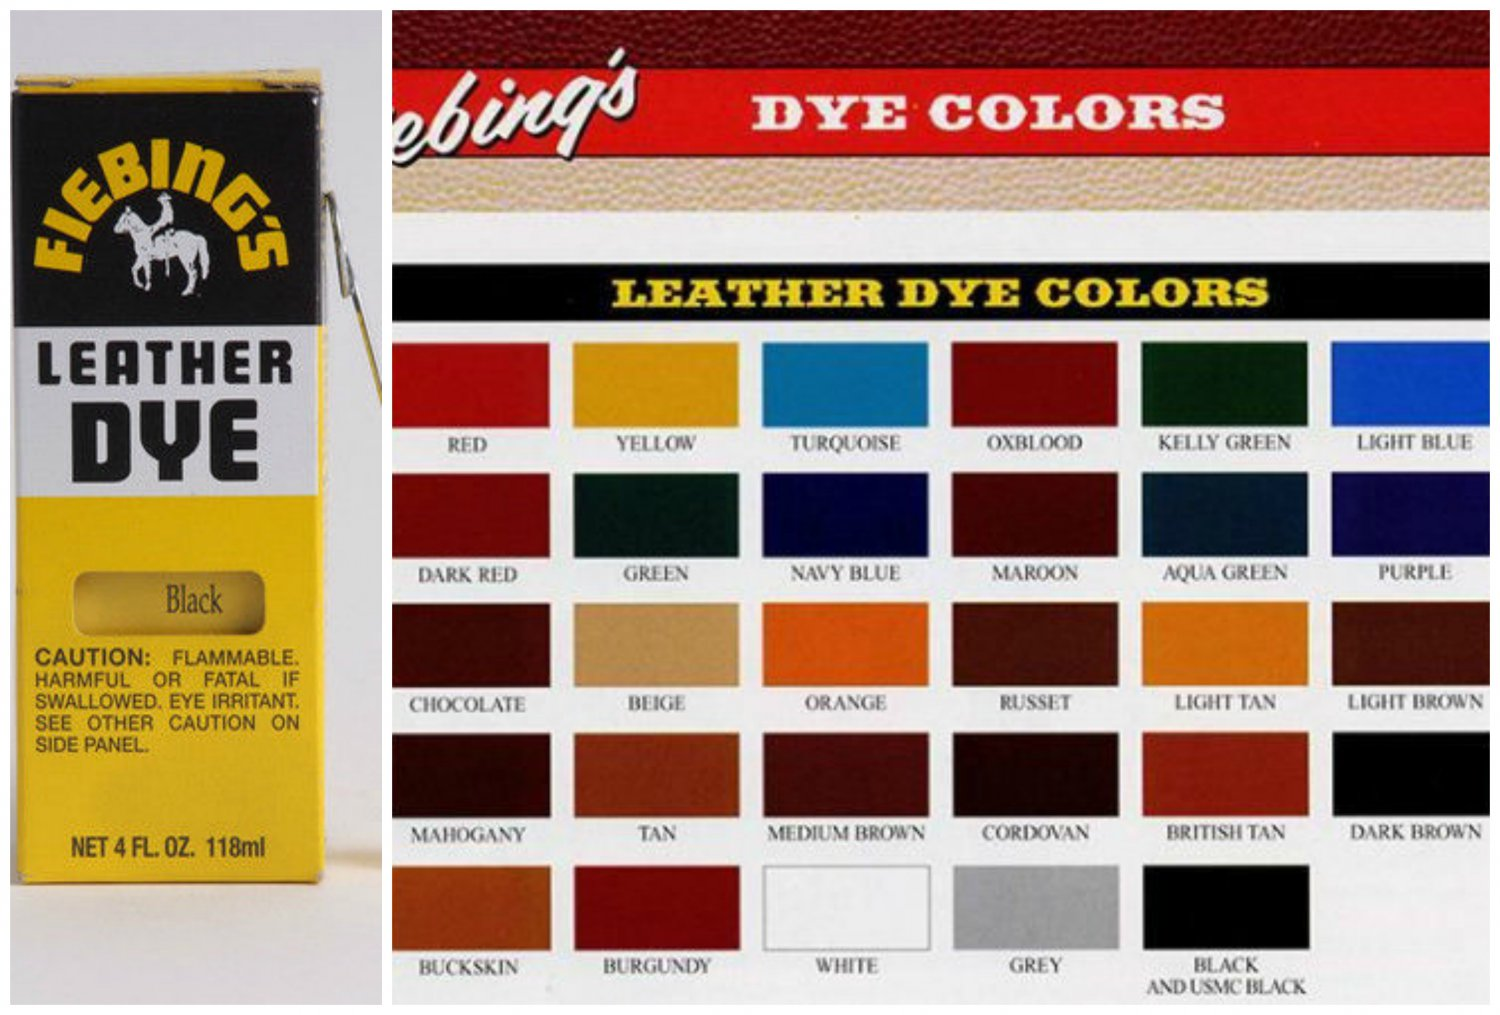 Fiebings Leather Dye 4 oz. with Applicator Shoes Boots Bag Yellow Color